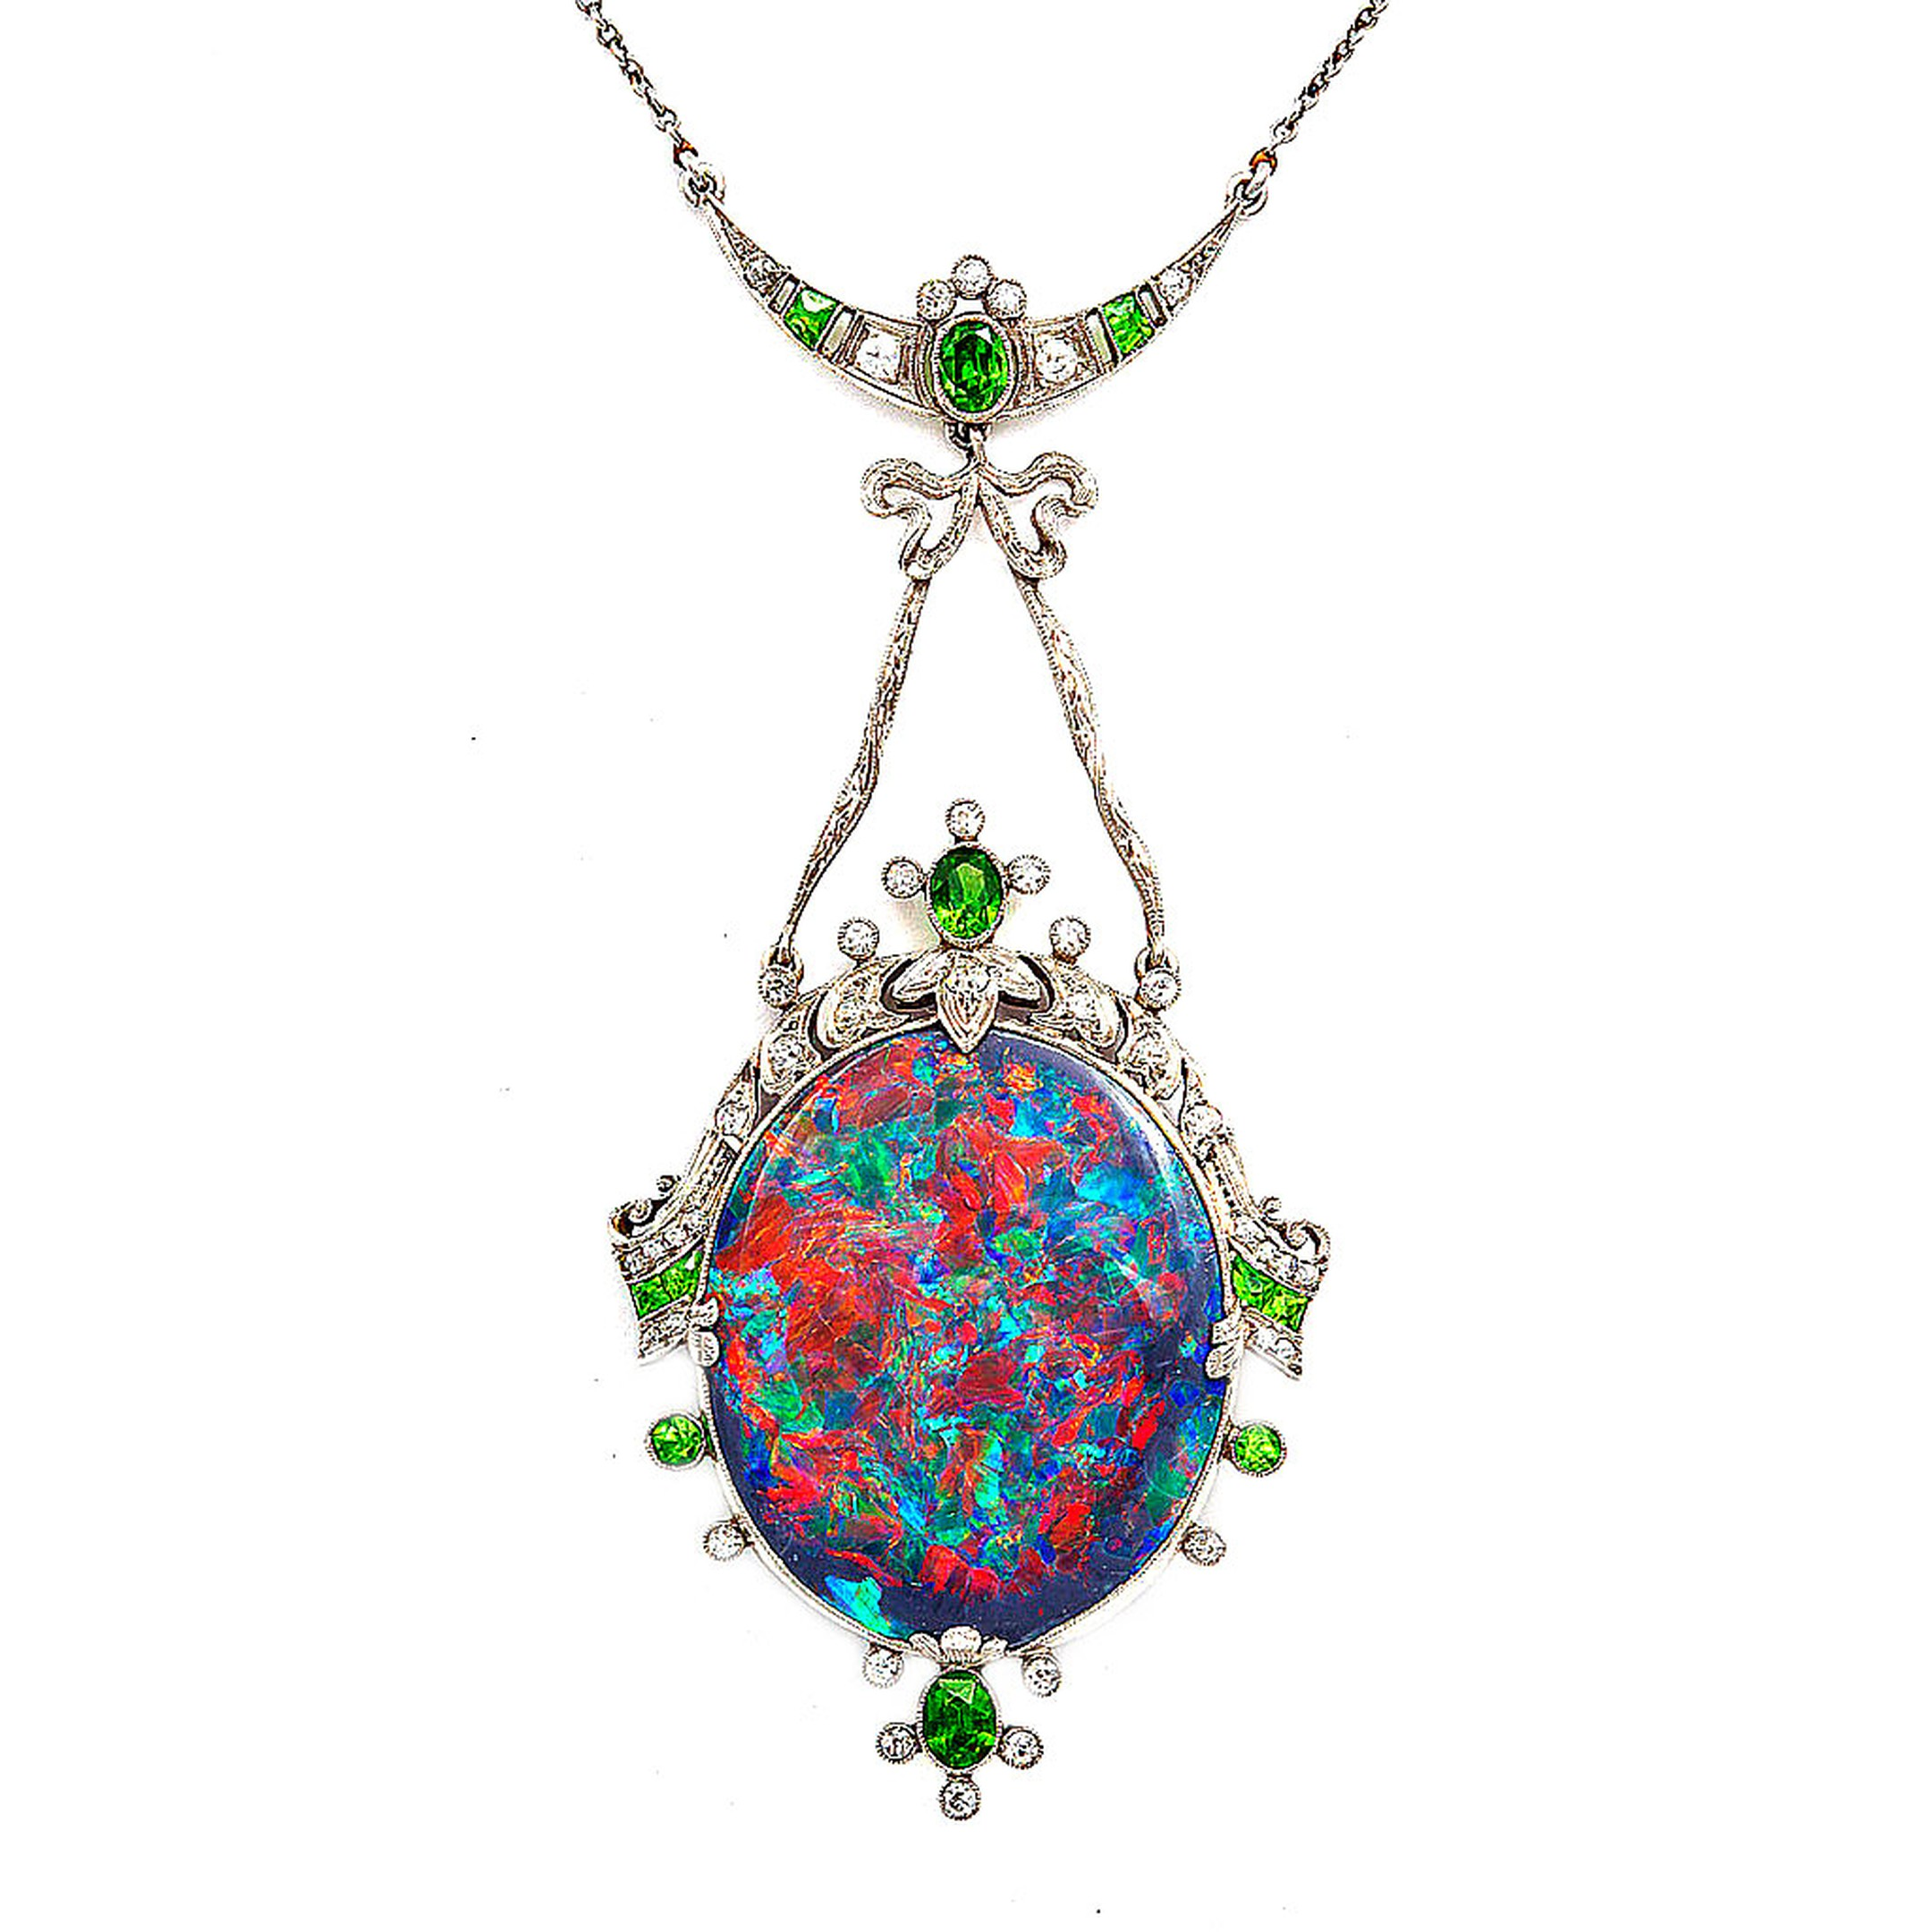 A La Vieille Russie antique black opal pendant set in a platinum mount with demantoid garnets and diamonds, American, circa 1915.